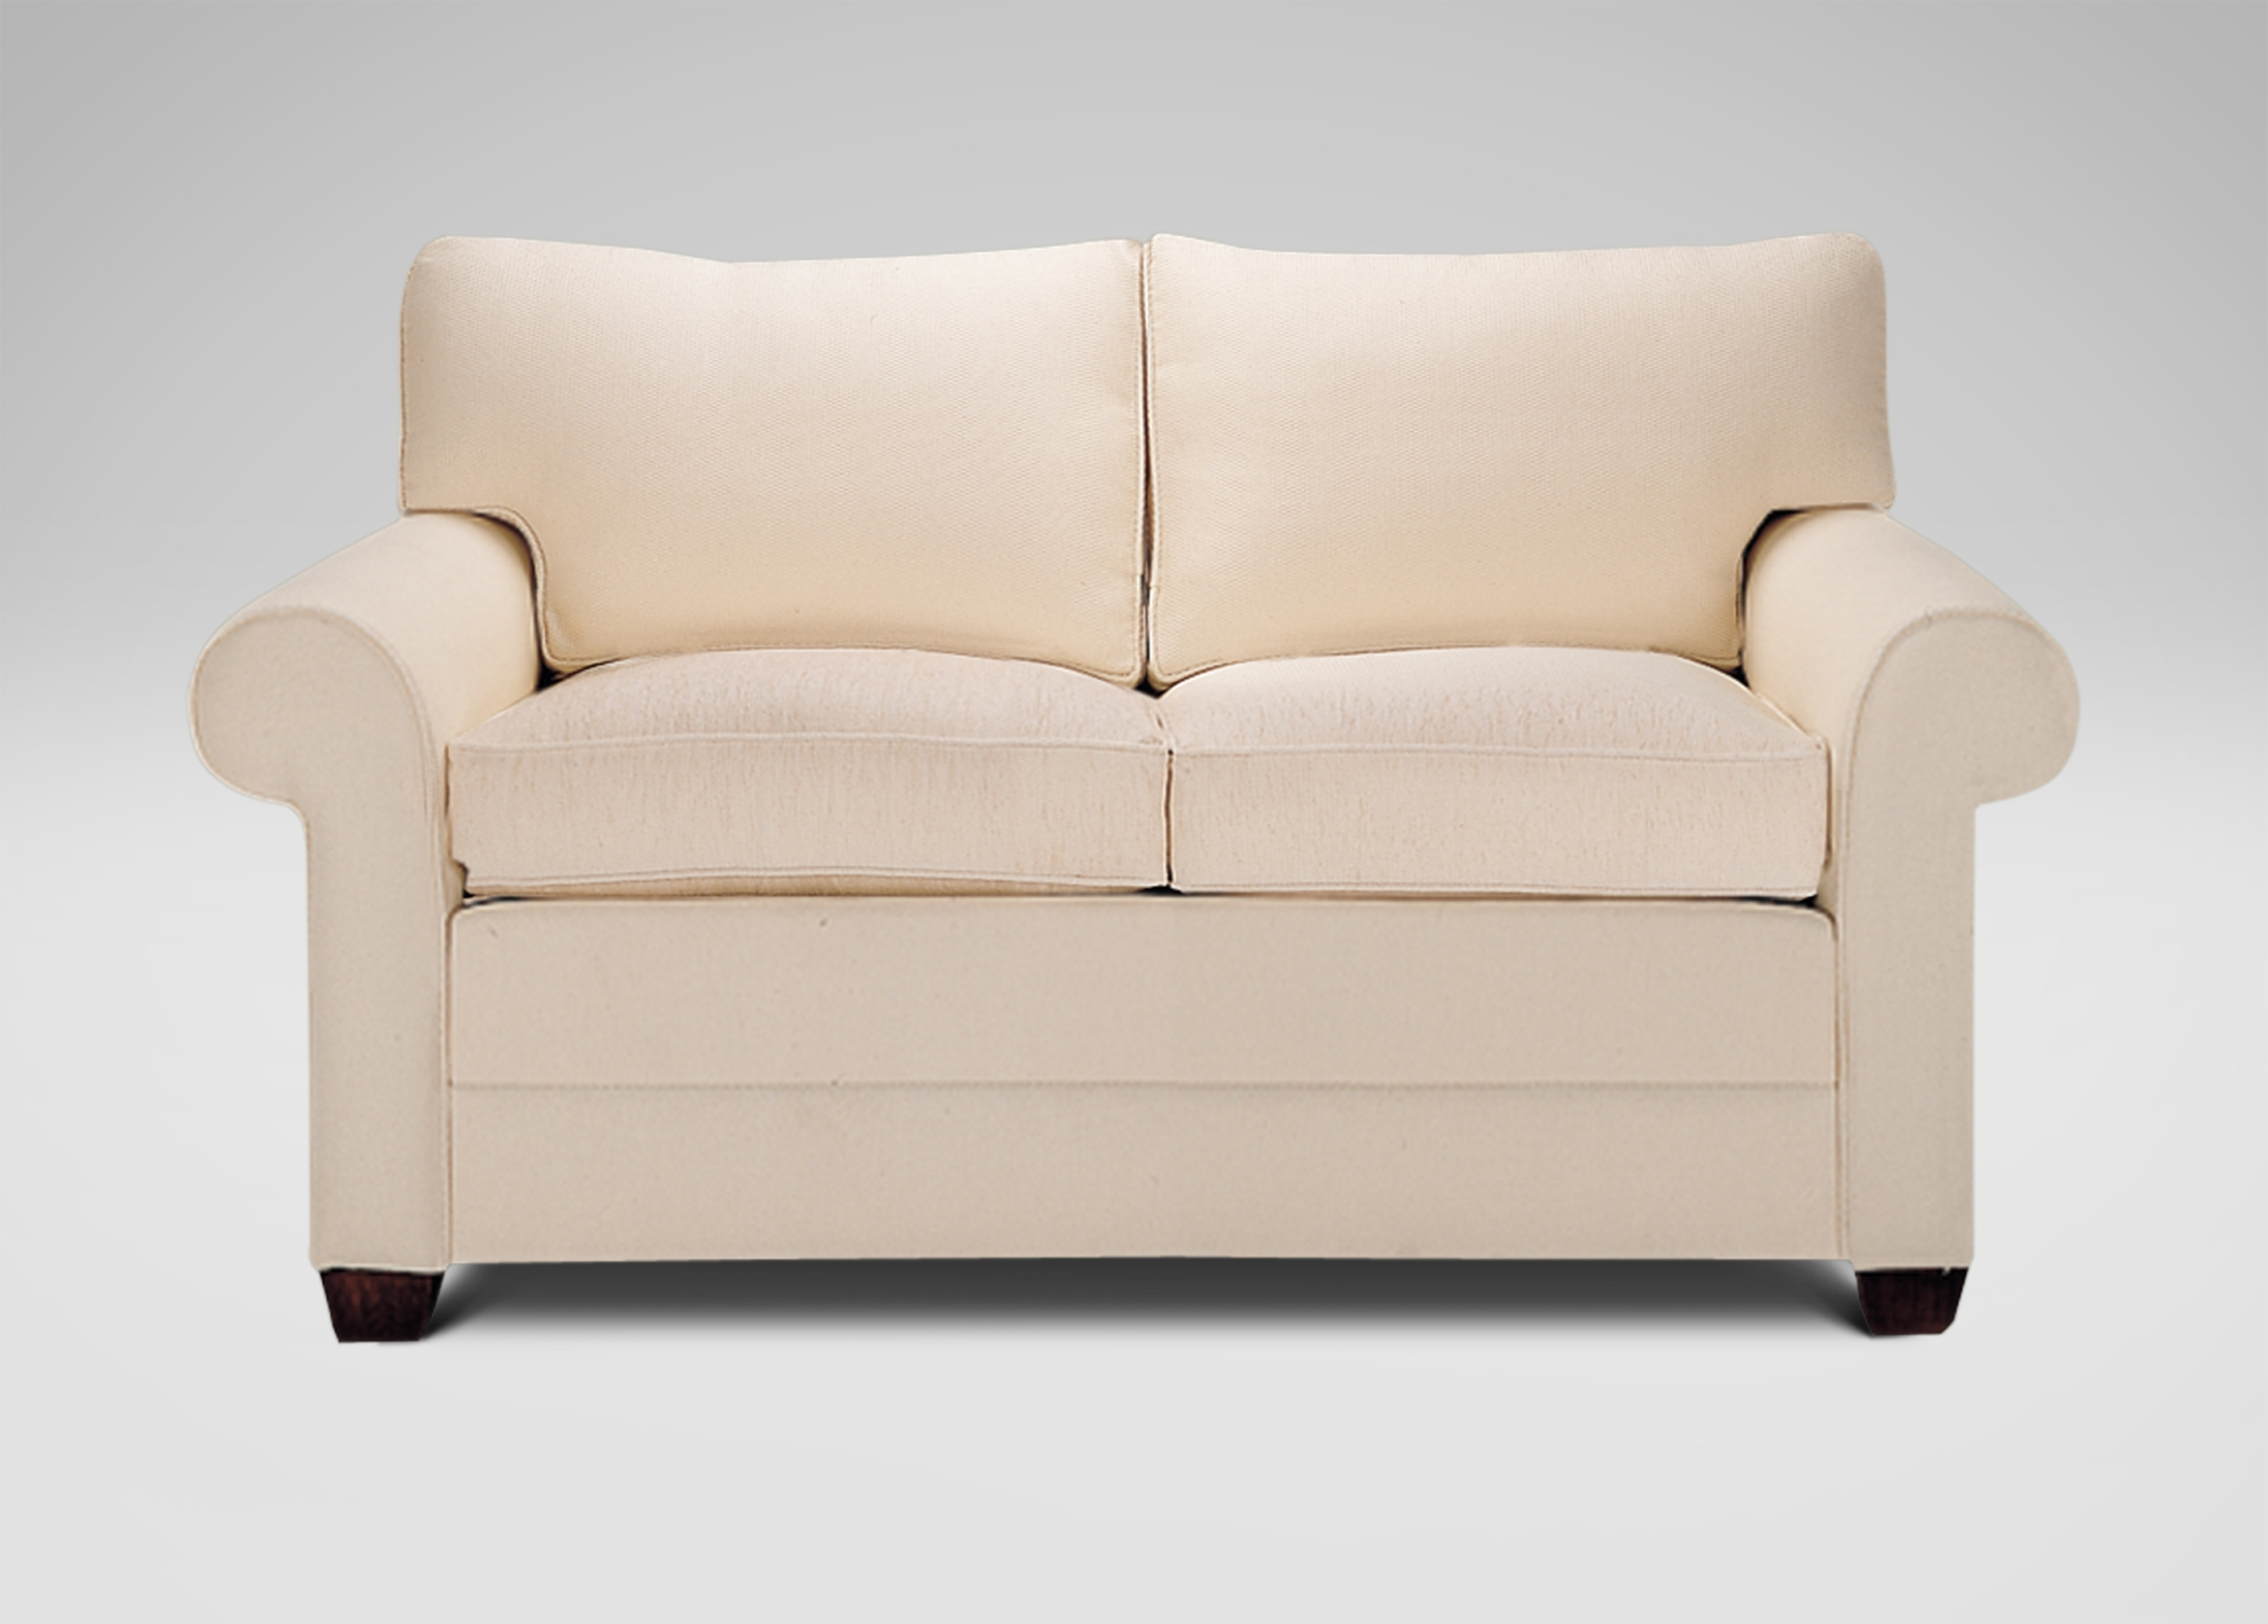 Most Up To Date Bennett Roll Arm Loveseat – Ethan Allen In Ethan Allen Sofas And Chairs (View 9 of 20)